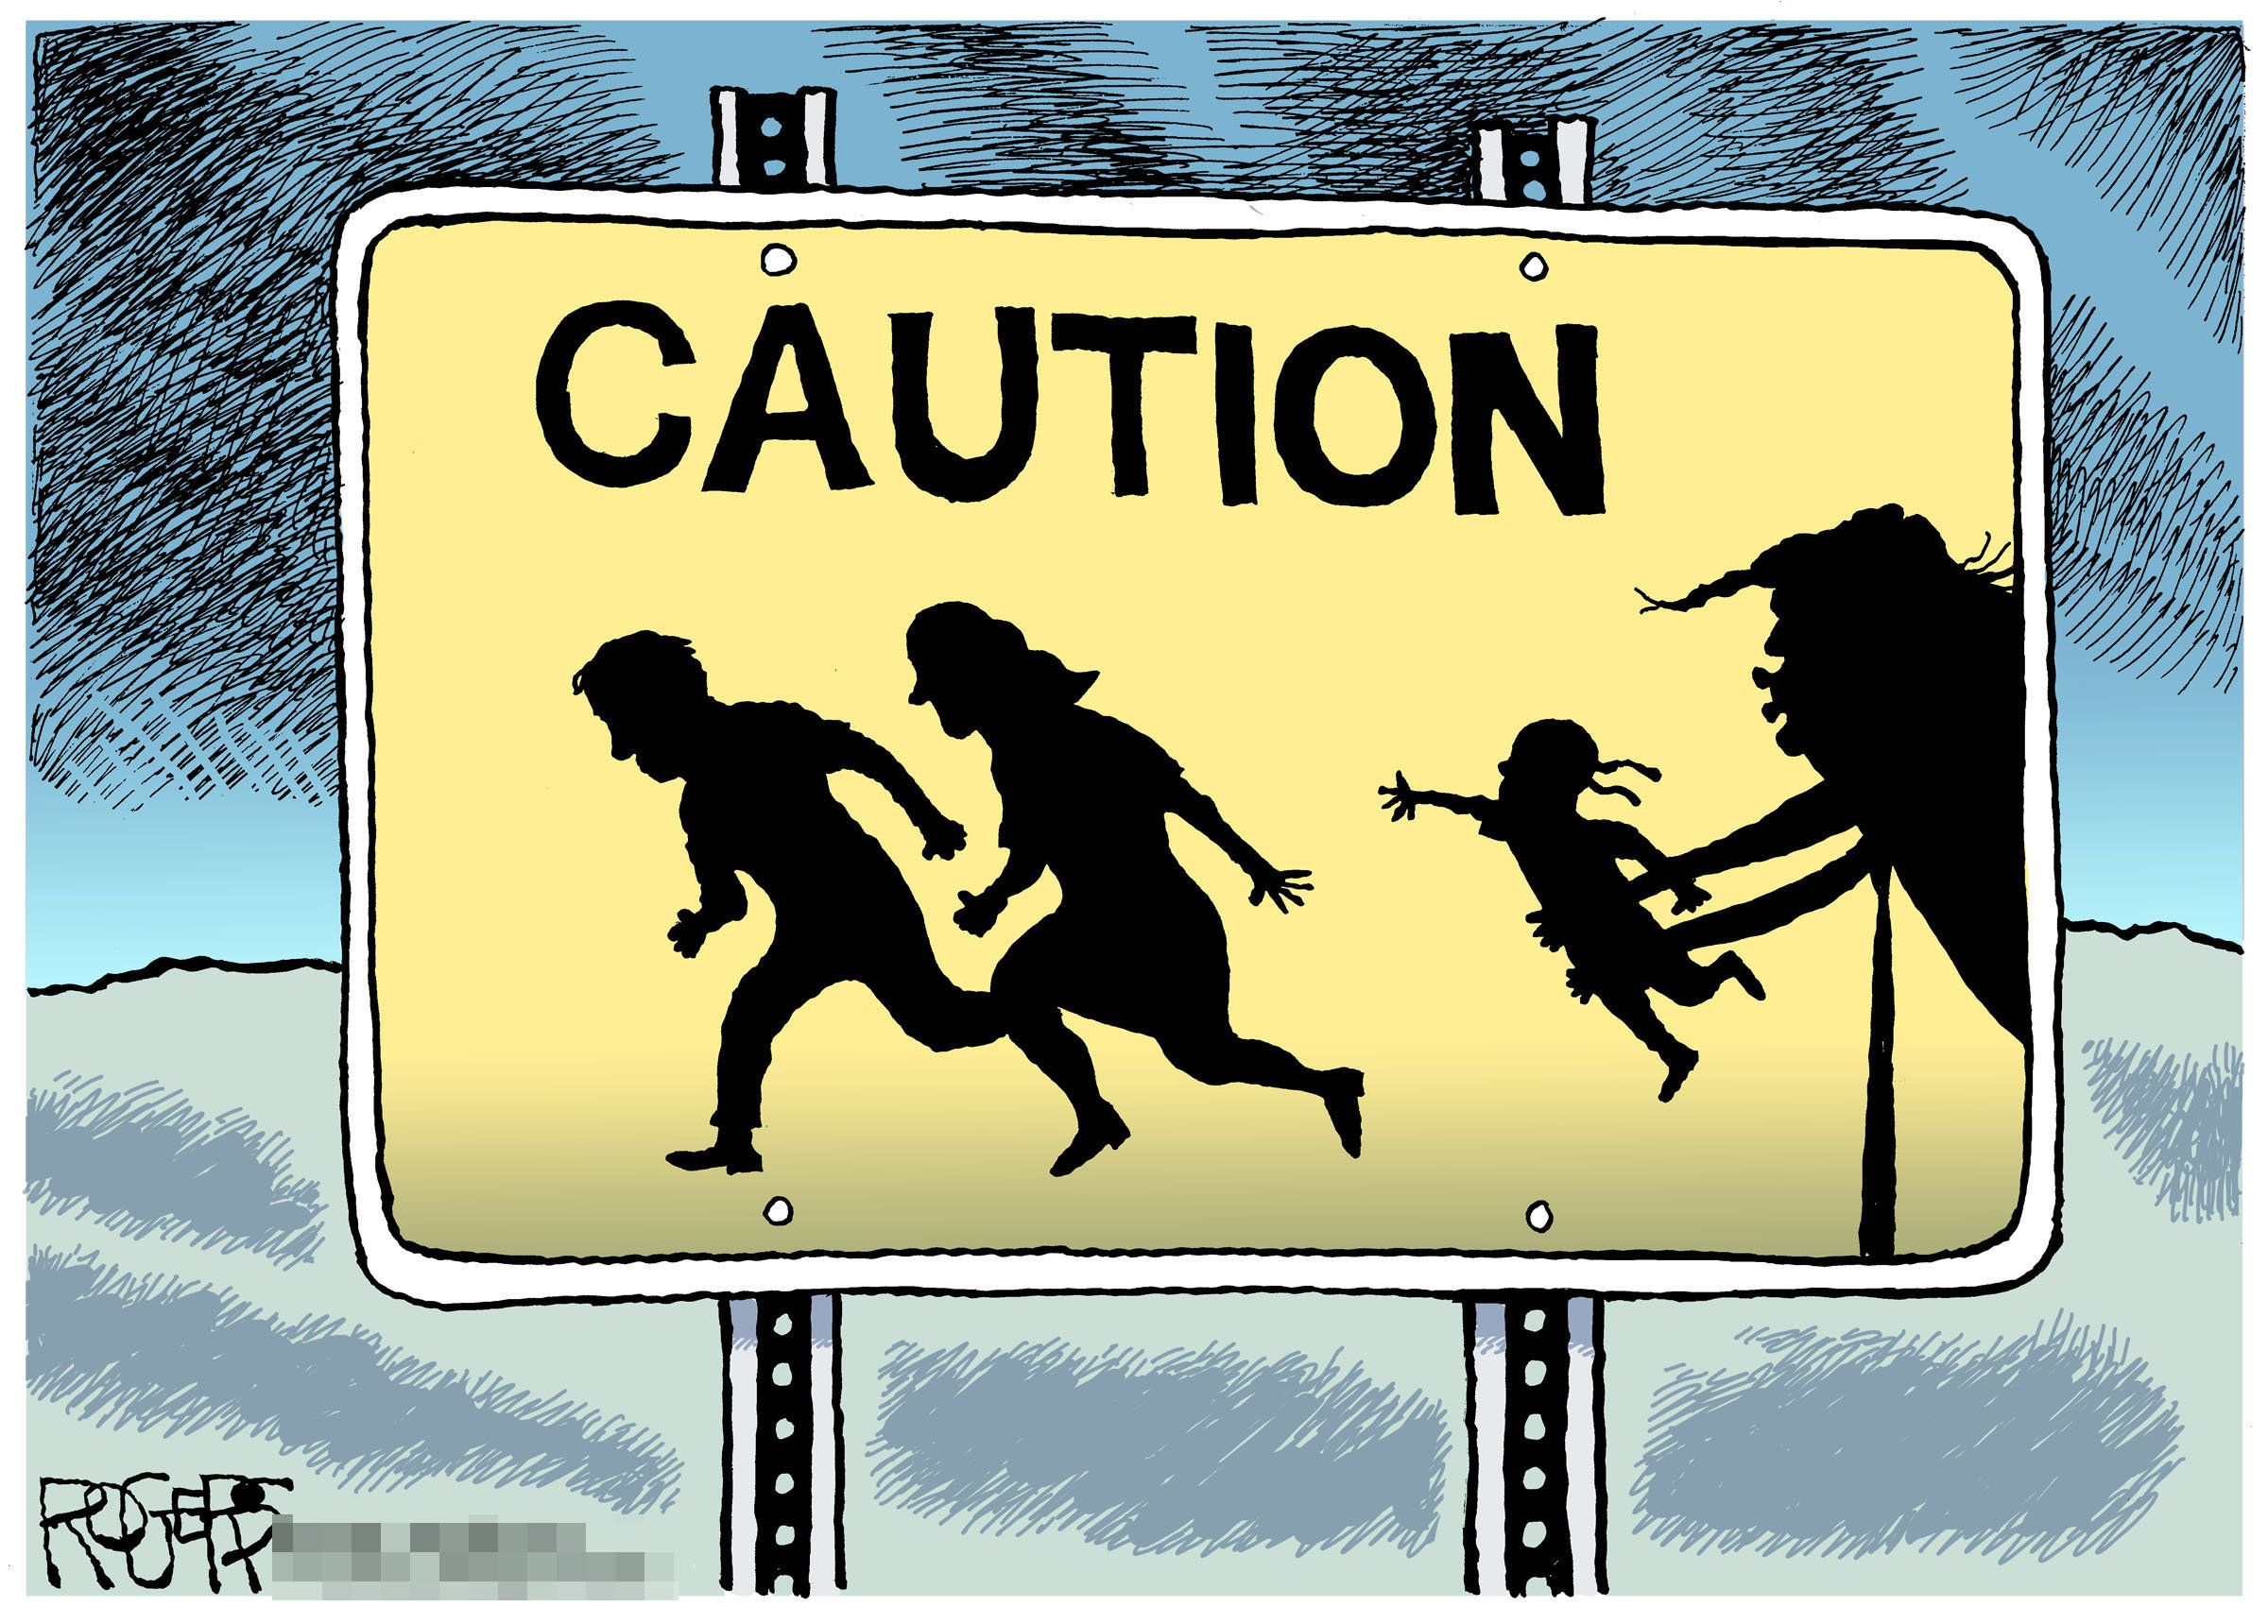 One of Rob Rogers' rejected cartoons,spotlighting Trump's policy separating undocumented immigrant children from their